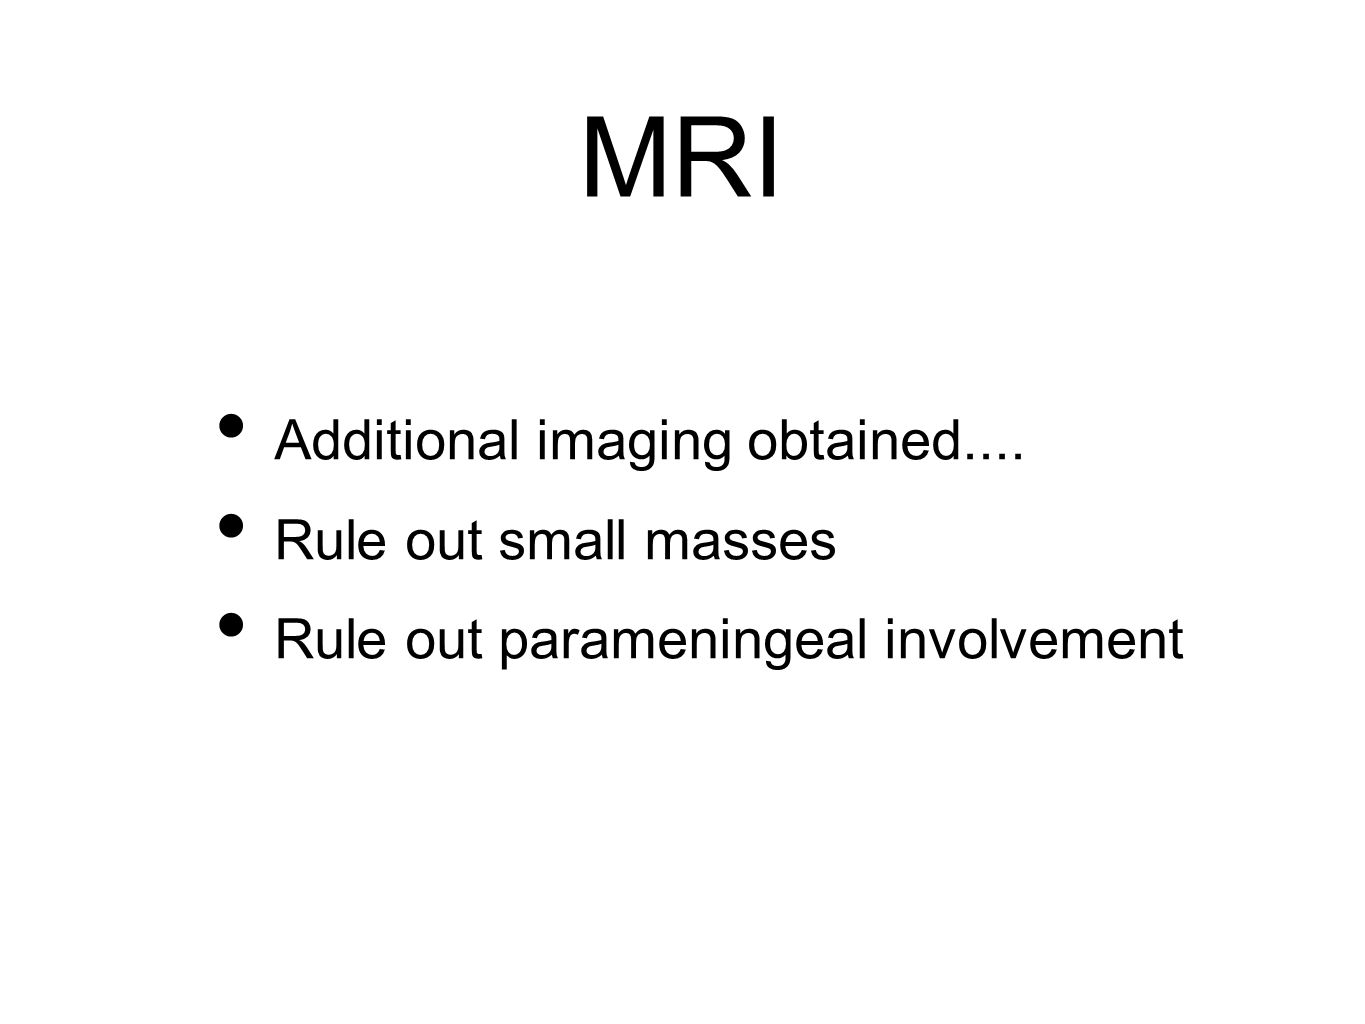 MRI Additional imaging obtained.... Rule out small masses Rule out parameningeal involvement